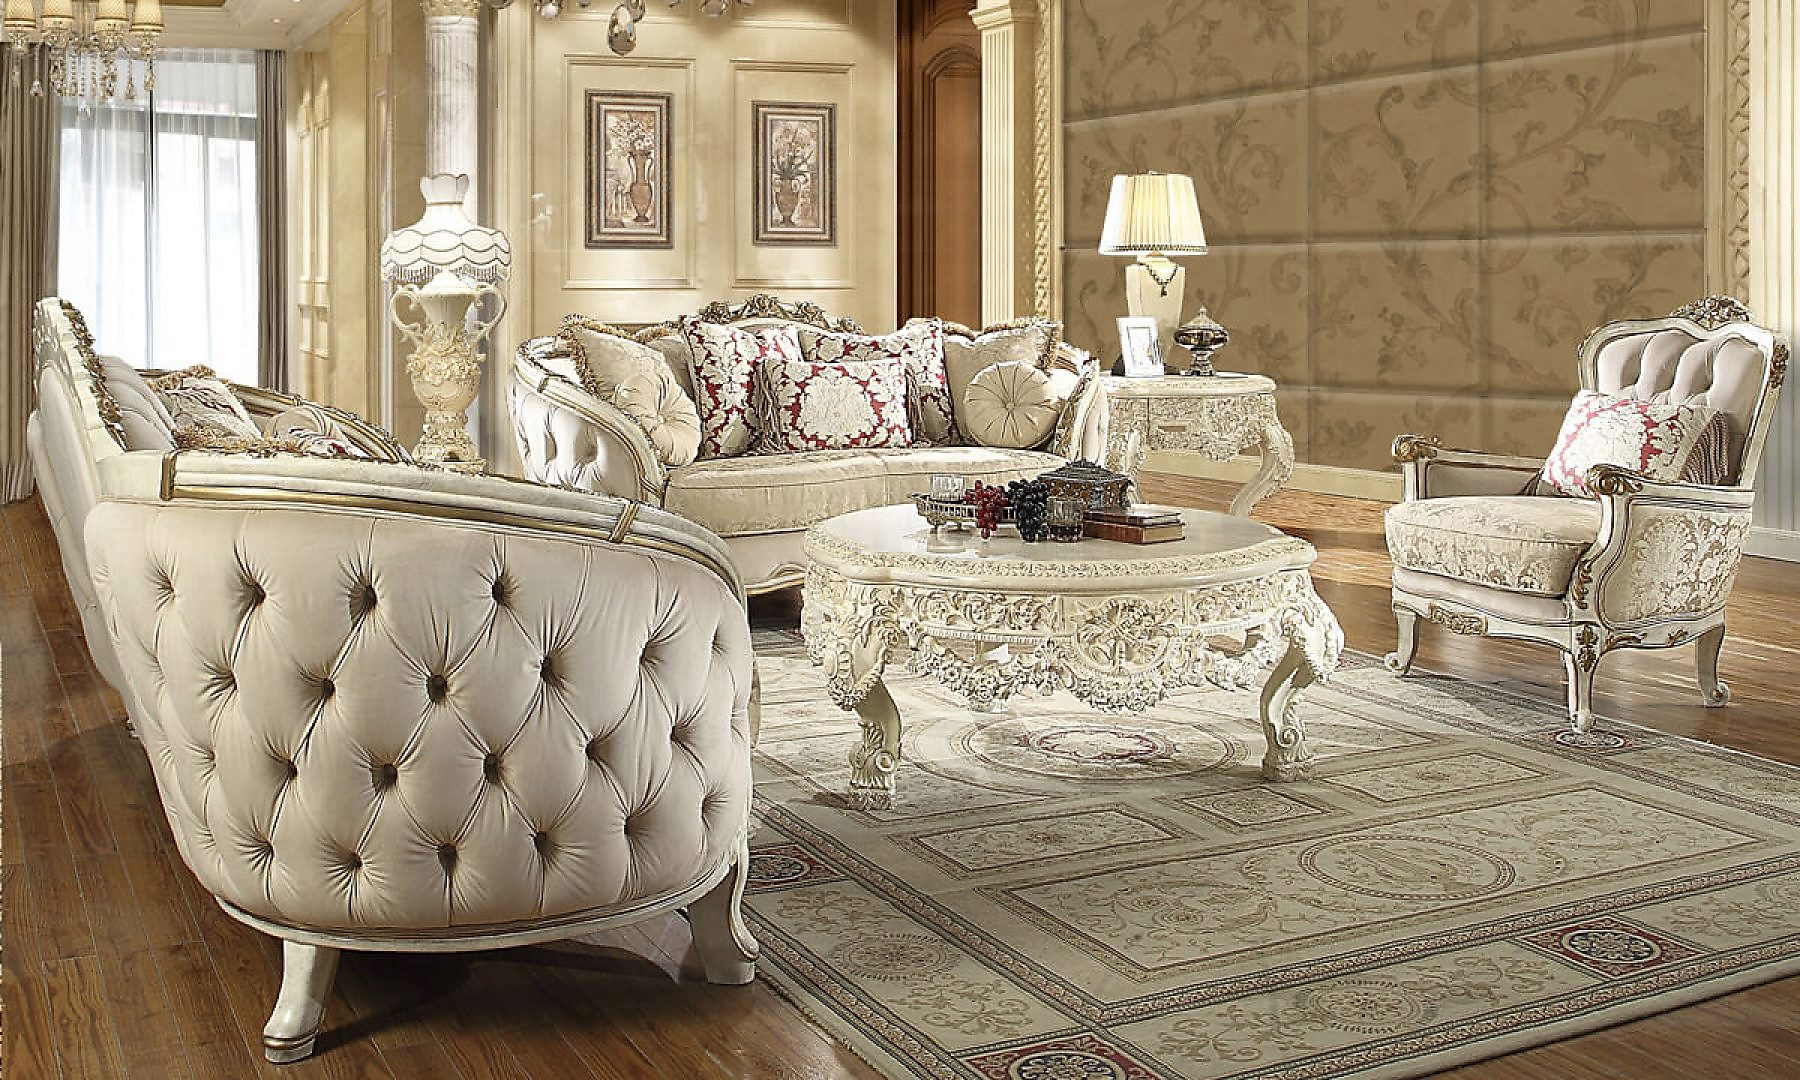 Traditional Living Room Set 3 PCS in Beige Fabric Traditional Style Homey Design HD-7310